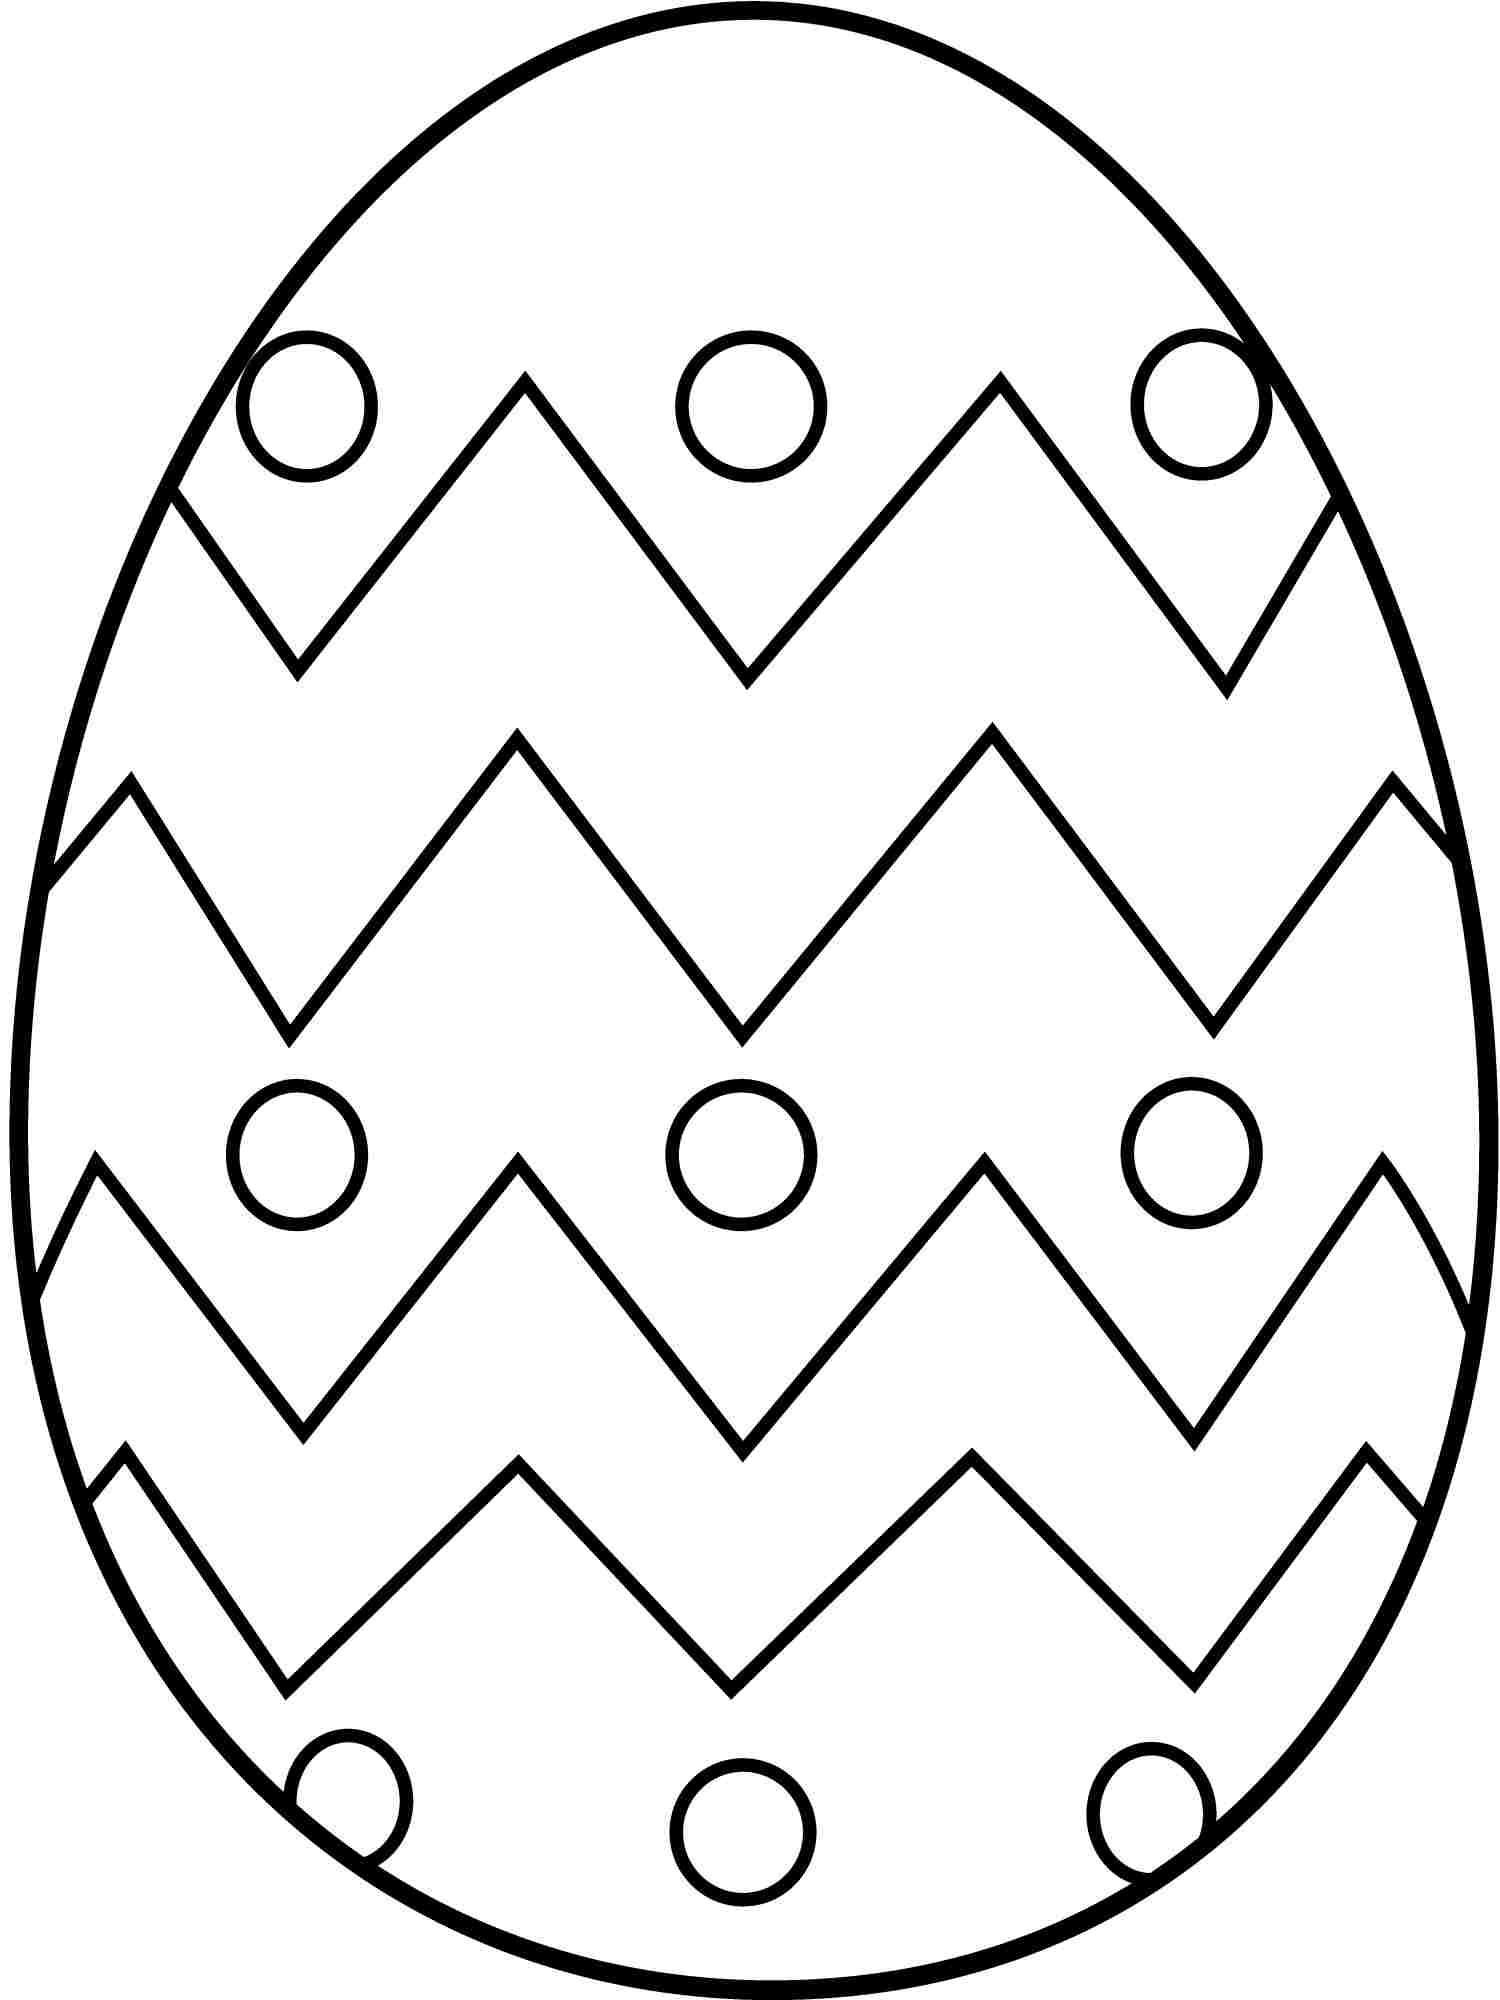 Easter Egg Coloring Pages At Getdrawings